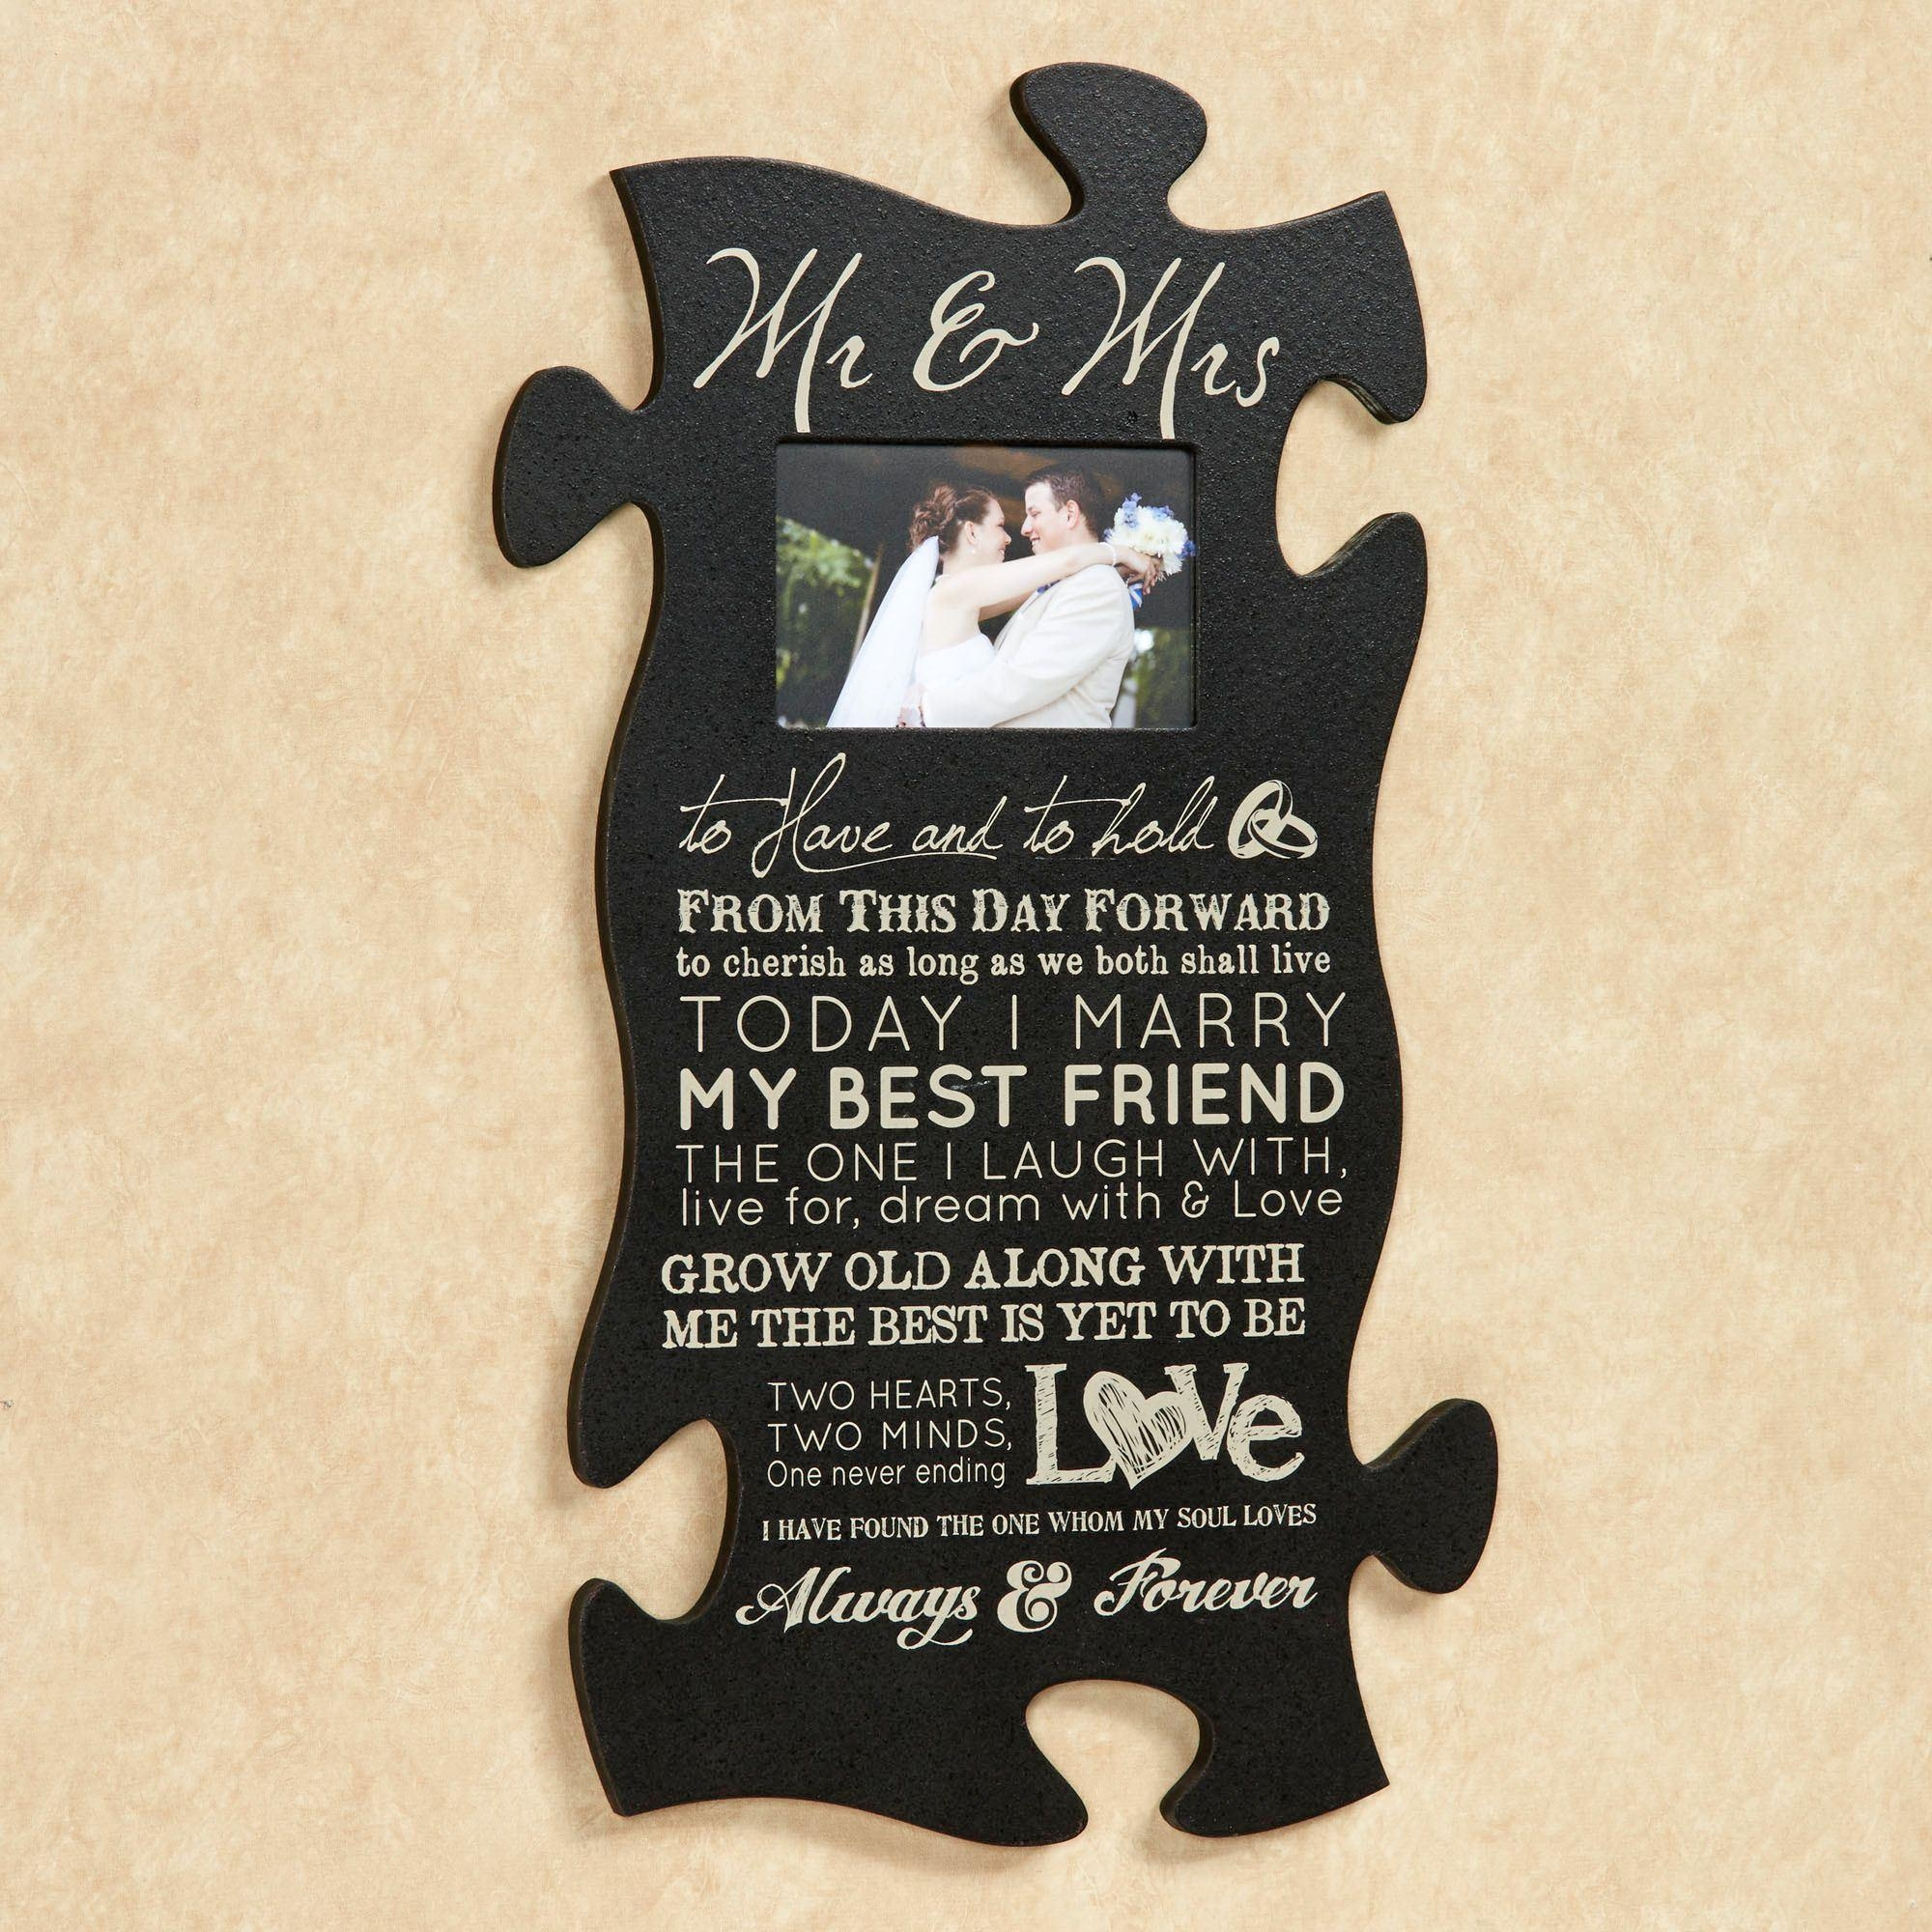 Love And Marriage Photo Frame Puzzle Piece Wall Art Inside Mr And Mrs Wall Art (Image 3 of 20)